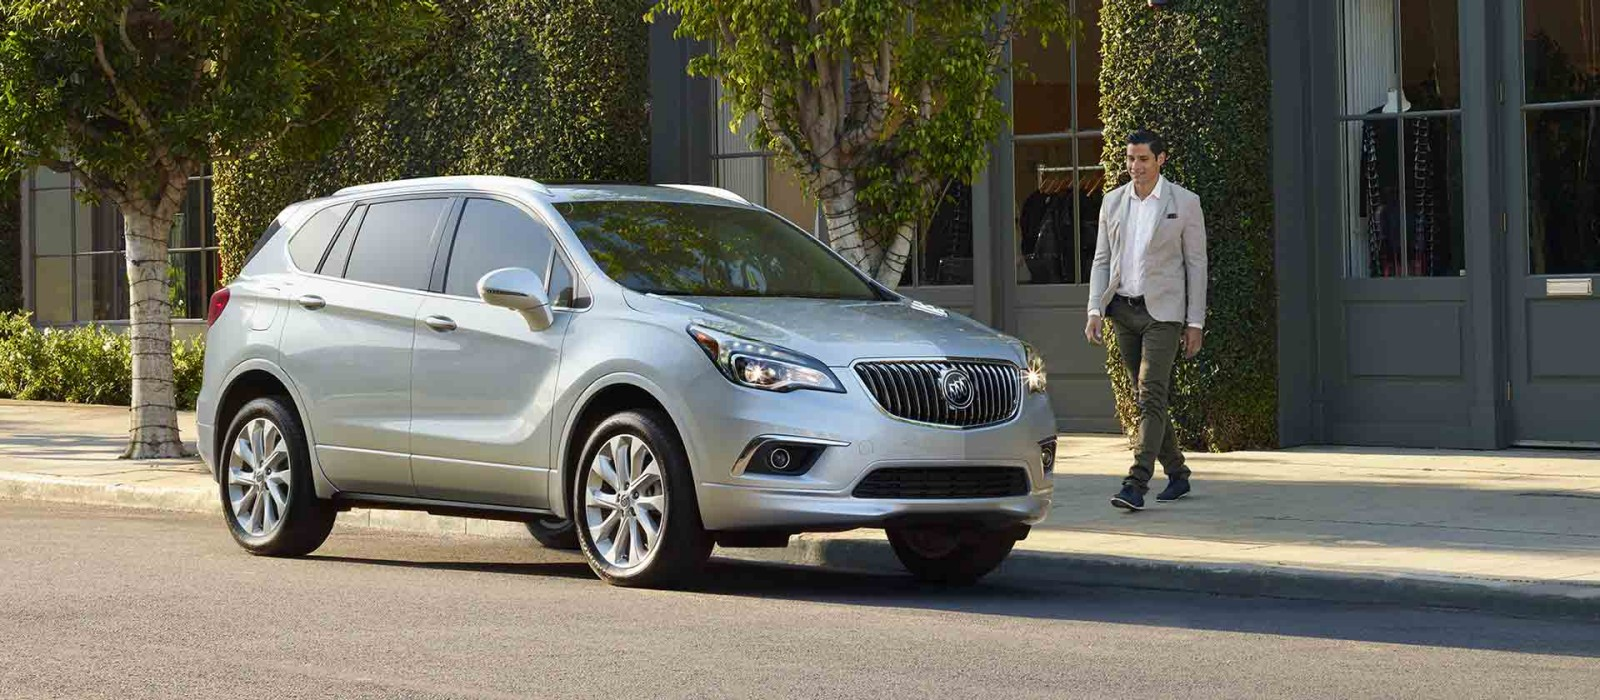 loans bankrate that s deals year buick cars last cheaper offer payments to than leasing com better lease models auto enclave new